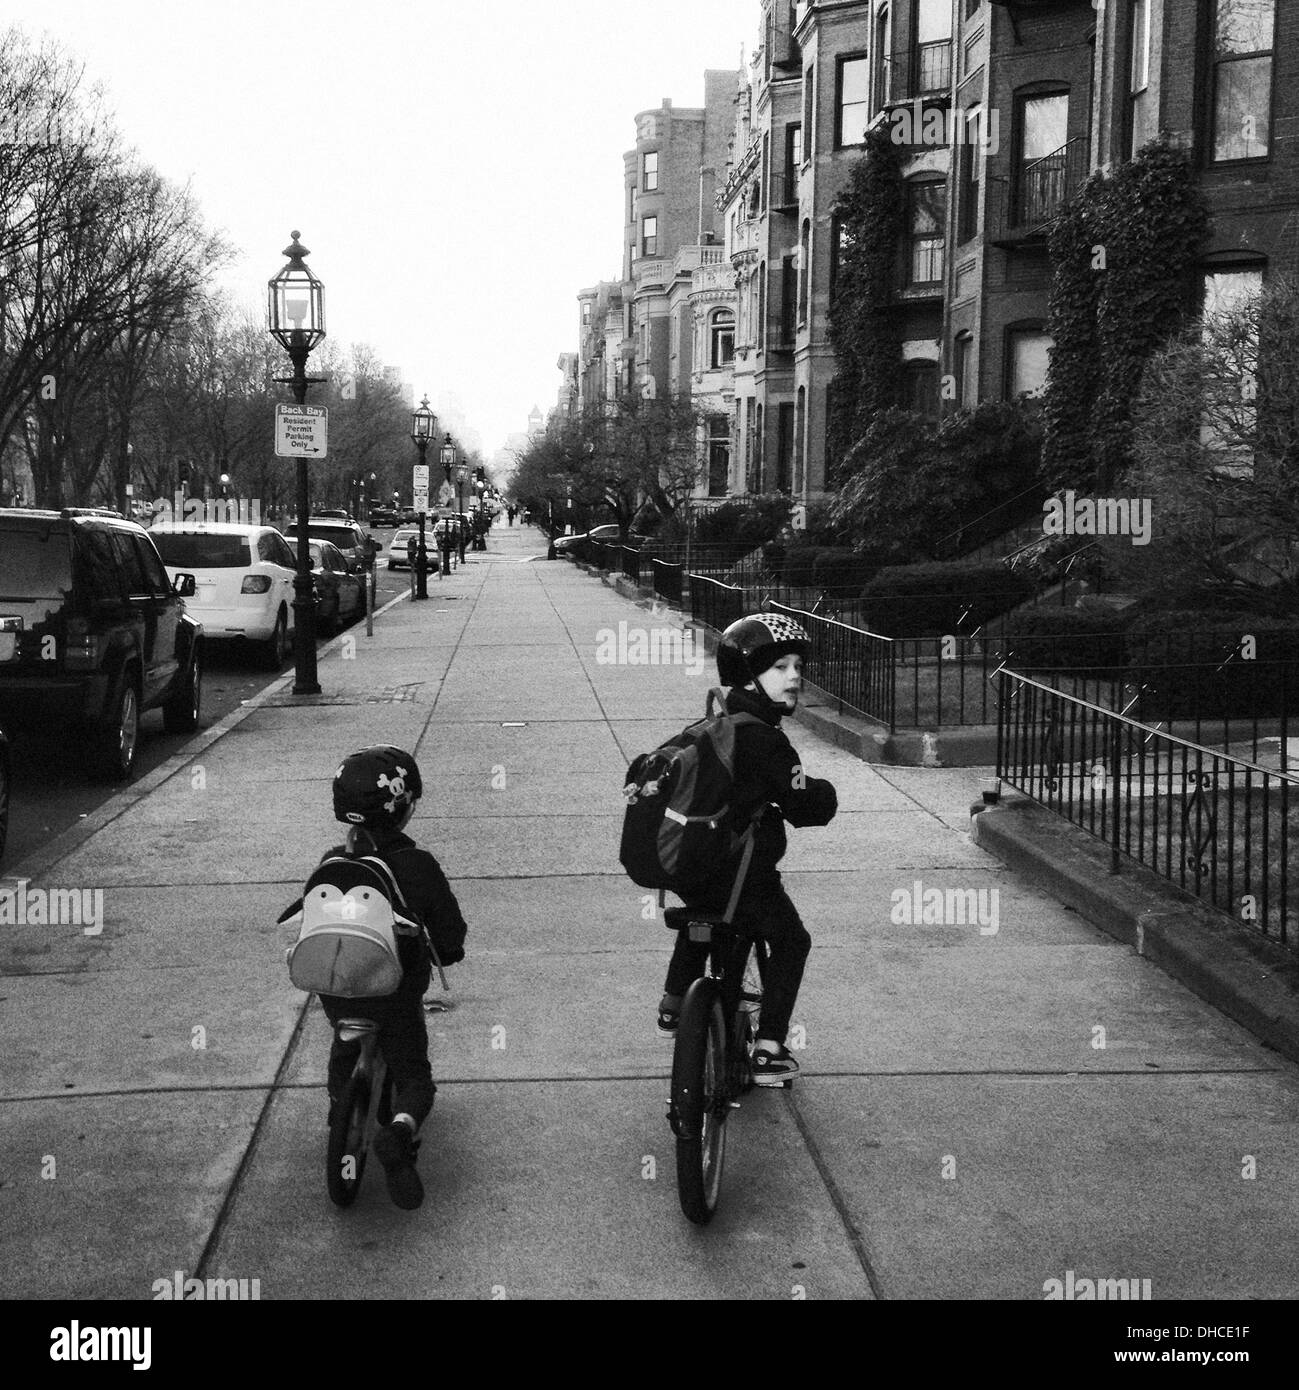 Two Boys Riding Bicycles on Urban Sidewalk, Rear View - Stock Image